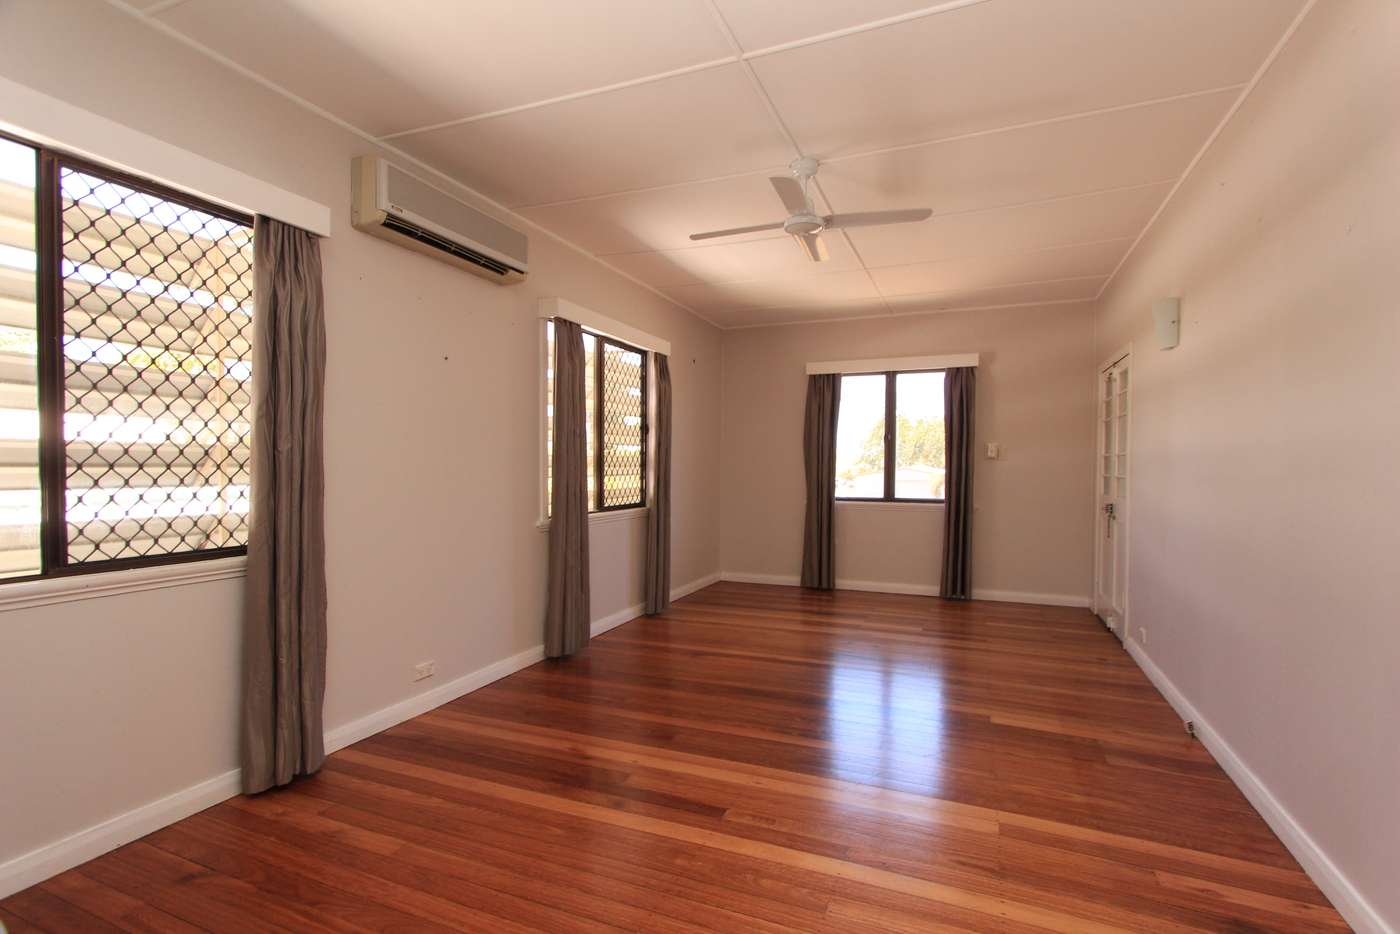 Sixth view of Homely house listing, 32 Barbeler Street, Currajong QLD 4812